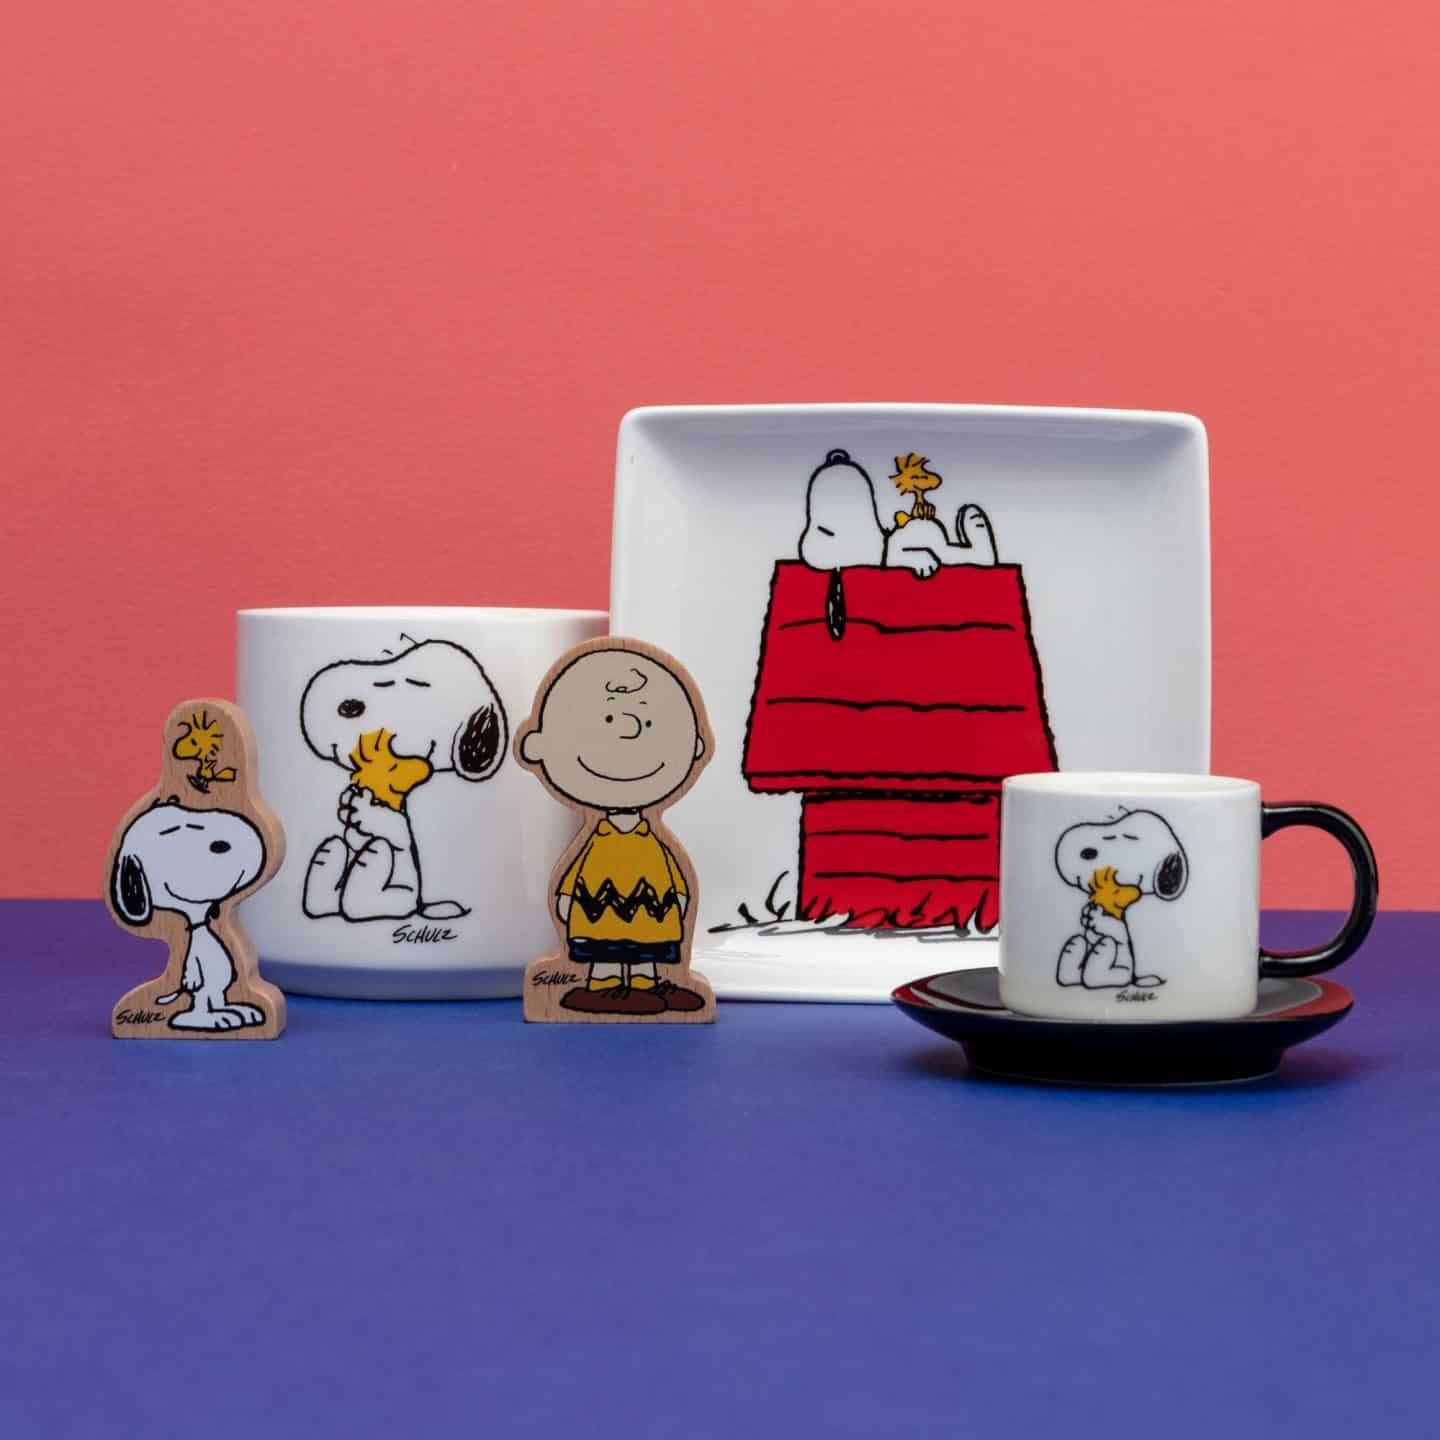 Peanuts homewares collection by Magpie